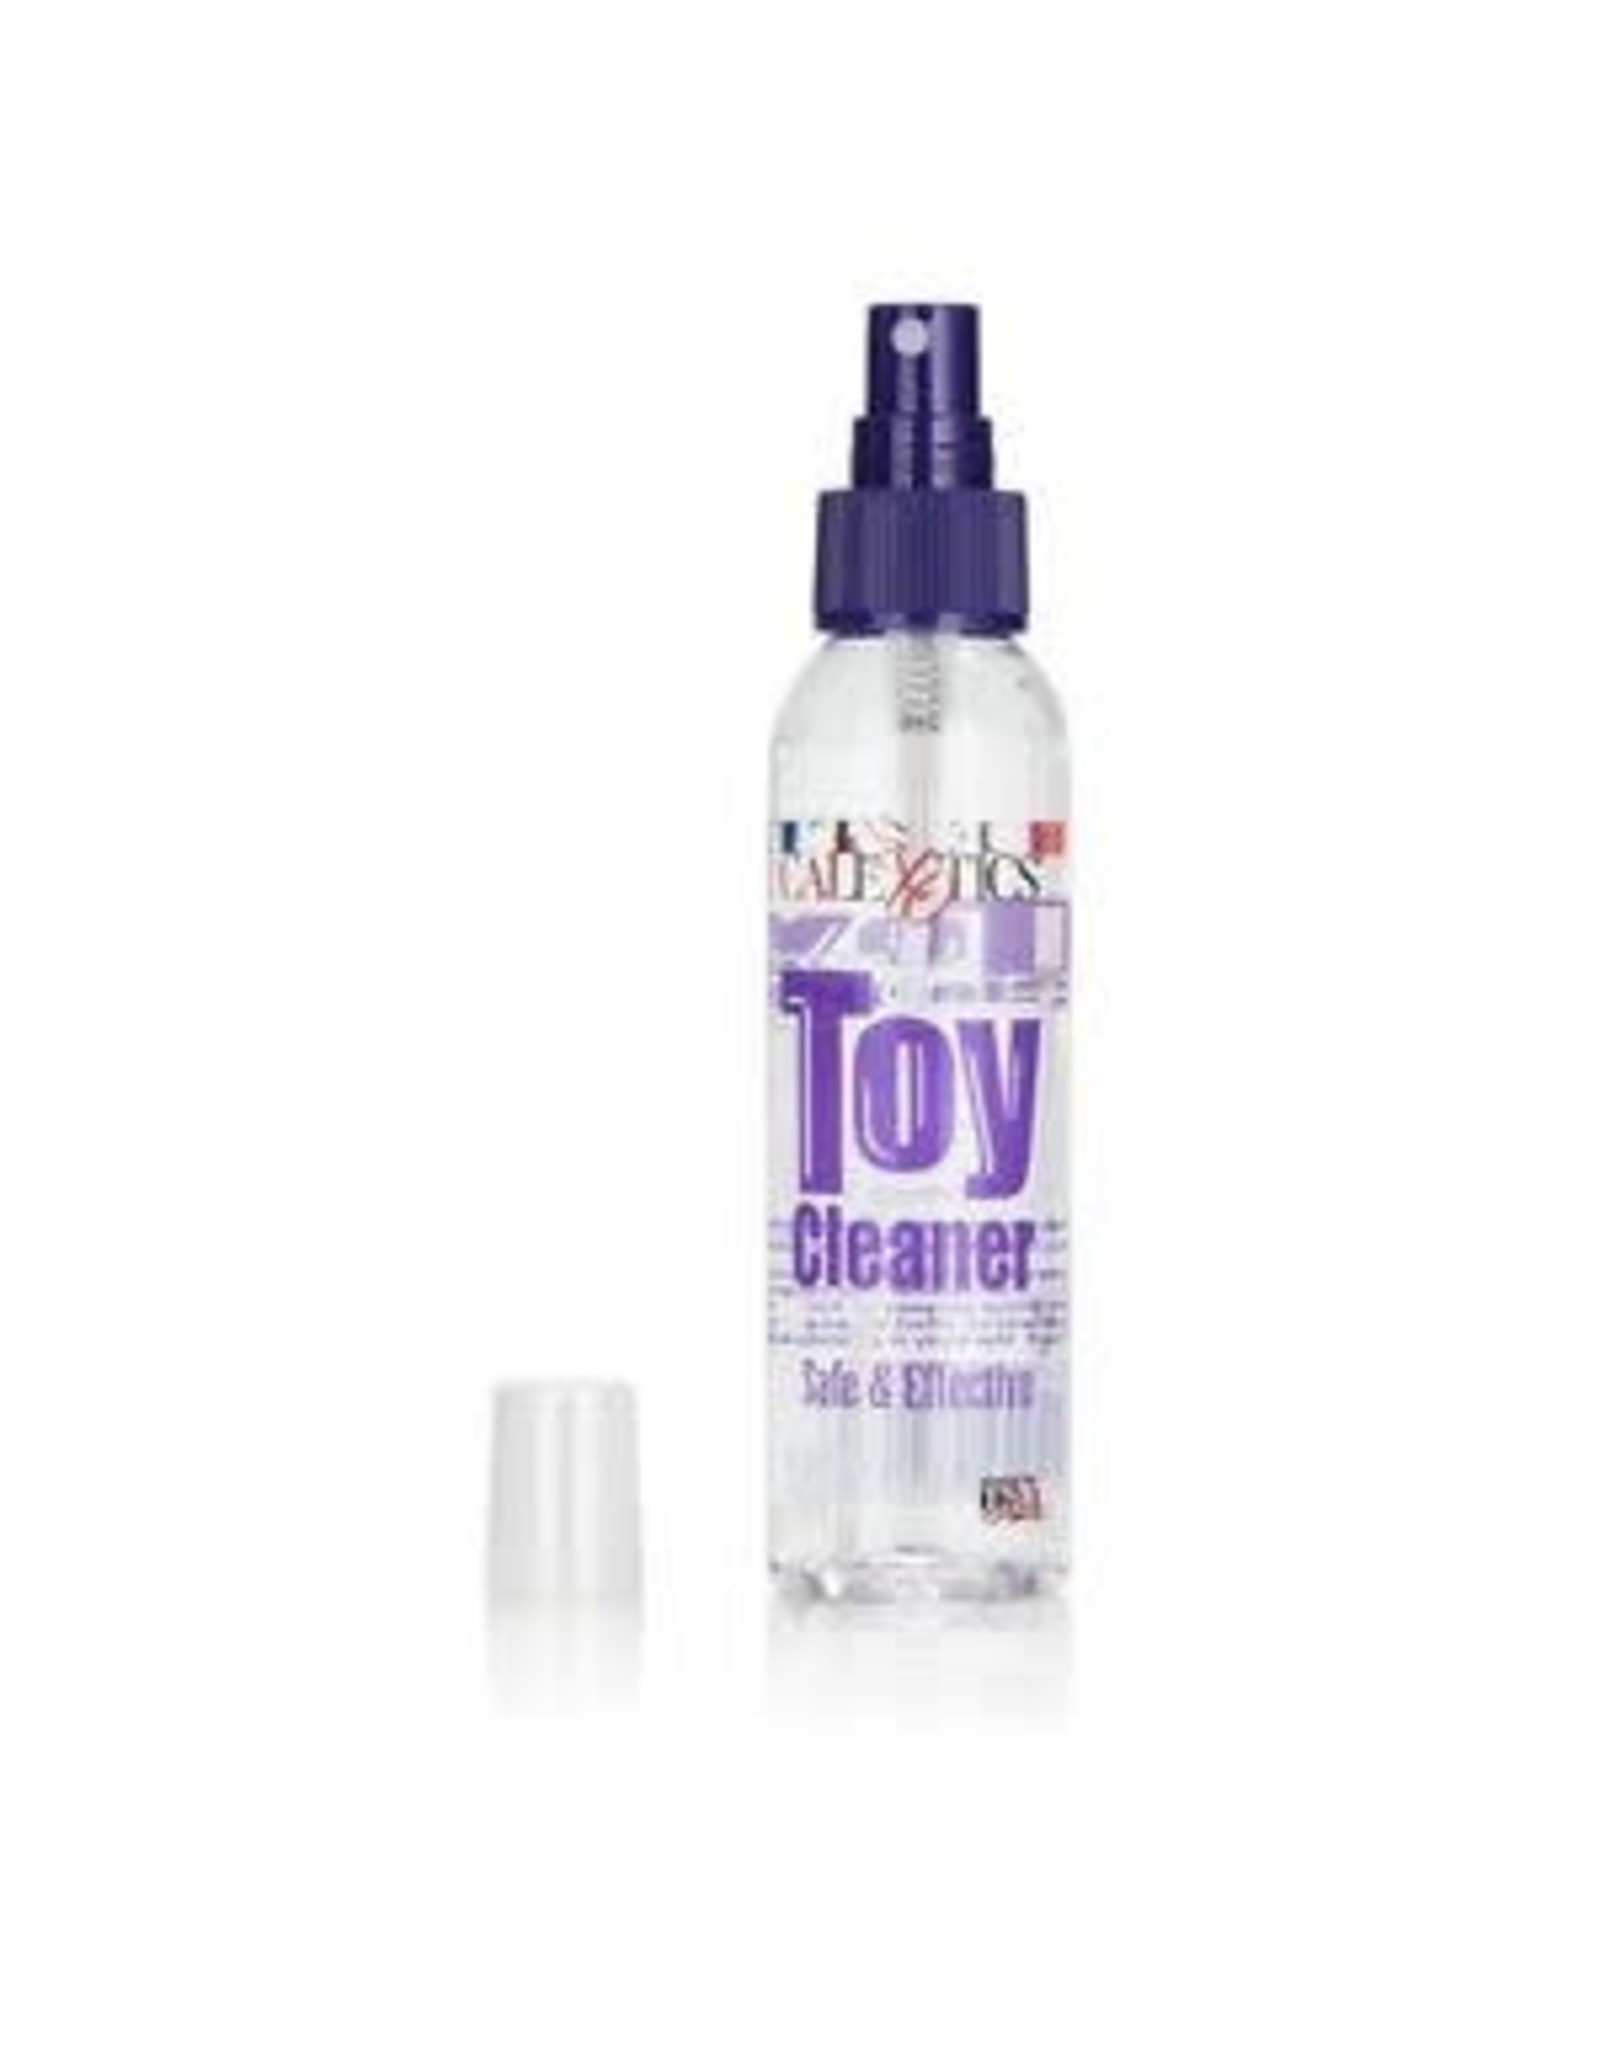 CALEXOTICS ANTI BACTERIAL TOY CLEANER 4.3 OZ